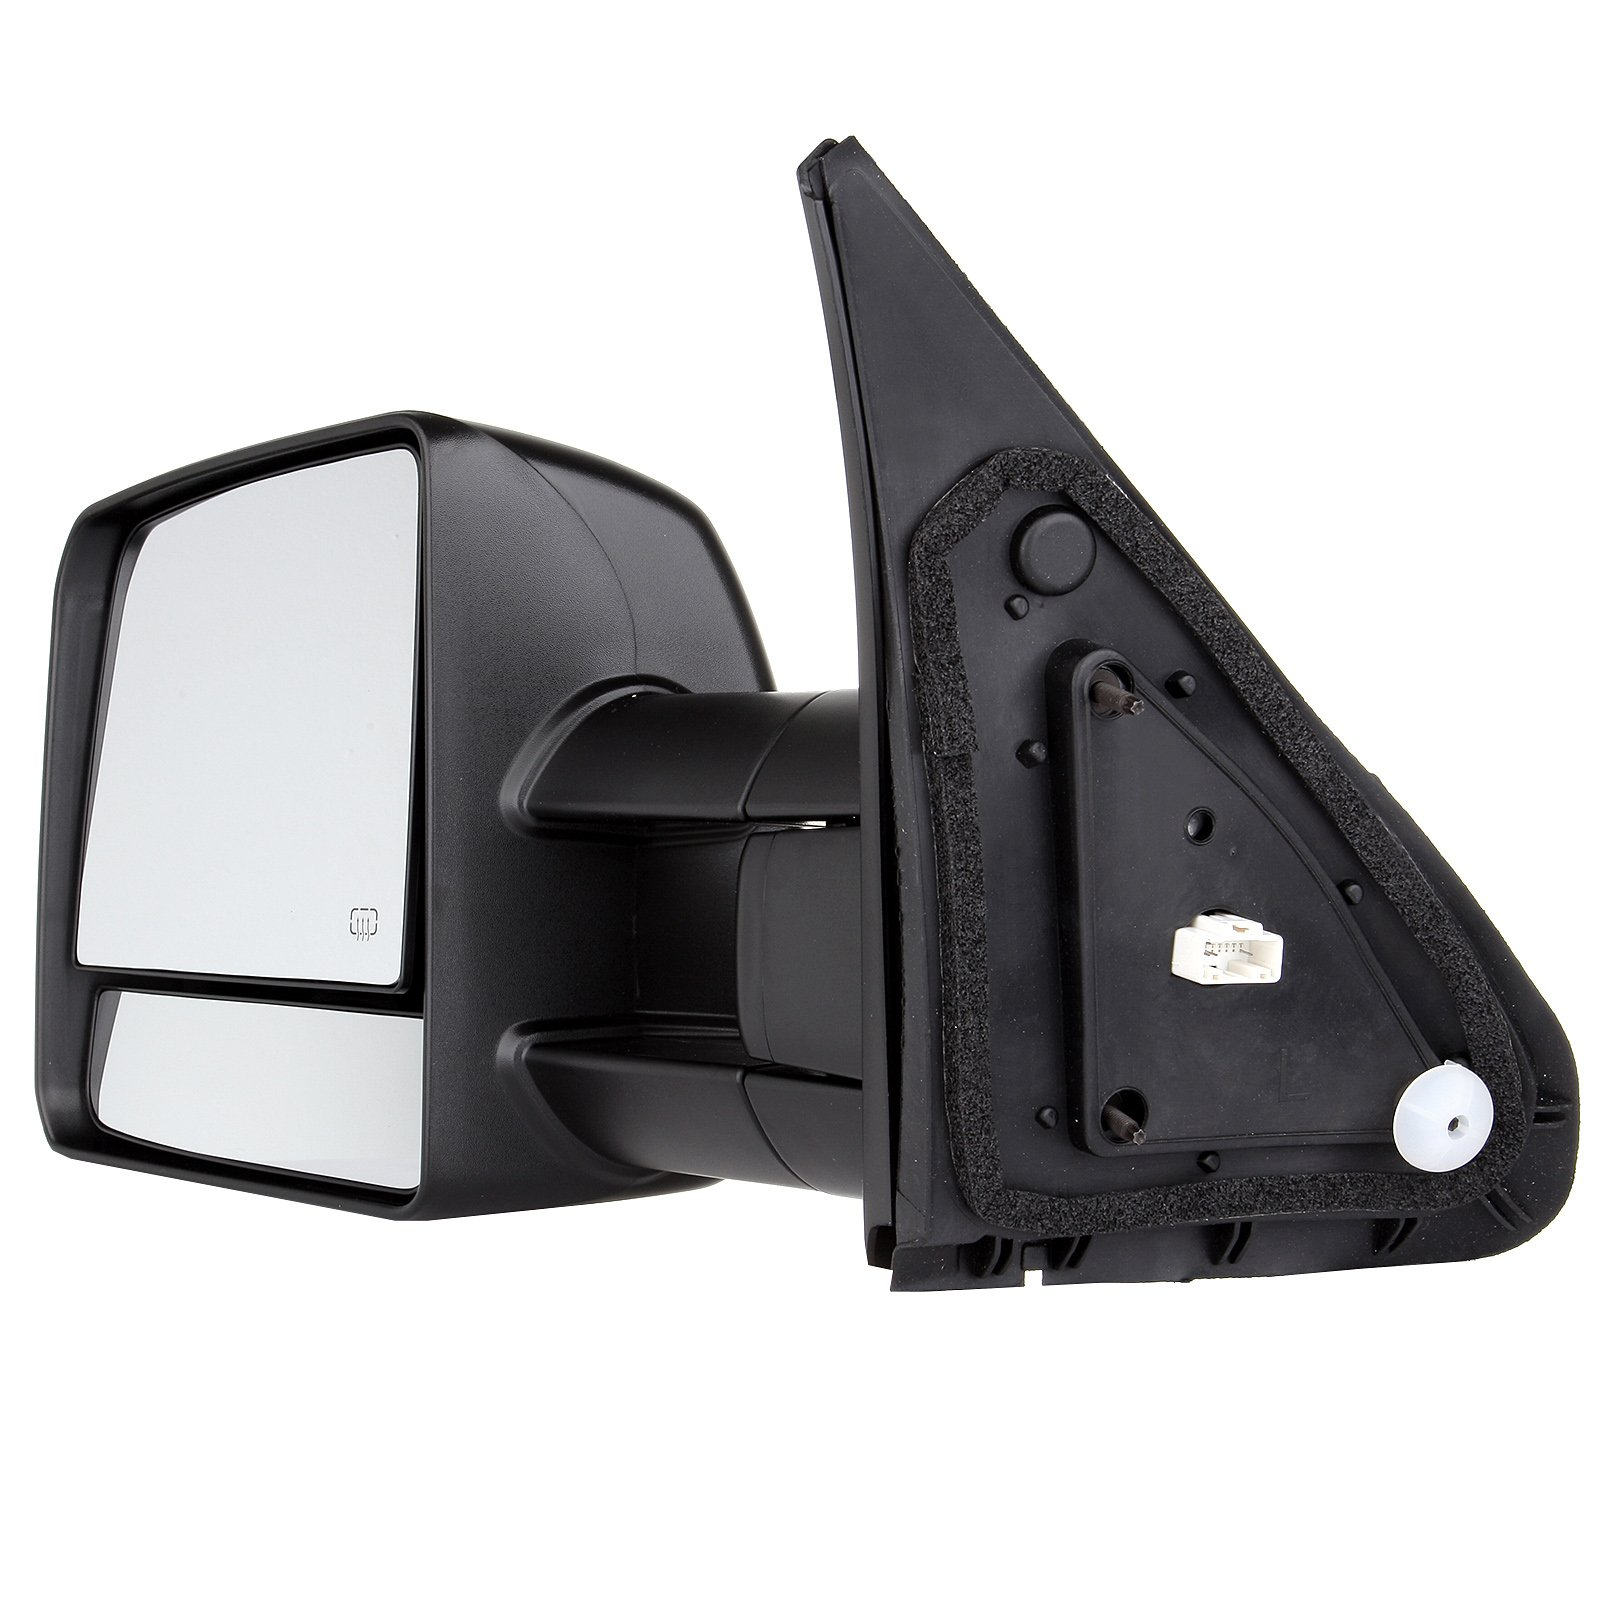 SCITOO fit Toyota Towing Mirrors Rear View Mirrors fit 2007-2016 Toyota Tundra Truck Larger Glass Power Control, Heated Turn Signal Manual Extending Folding (black) by SCITOO (Image #4)